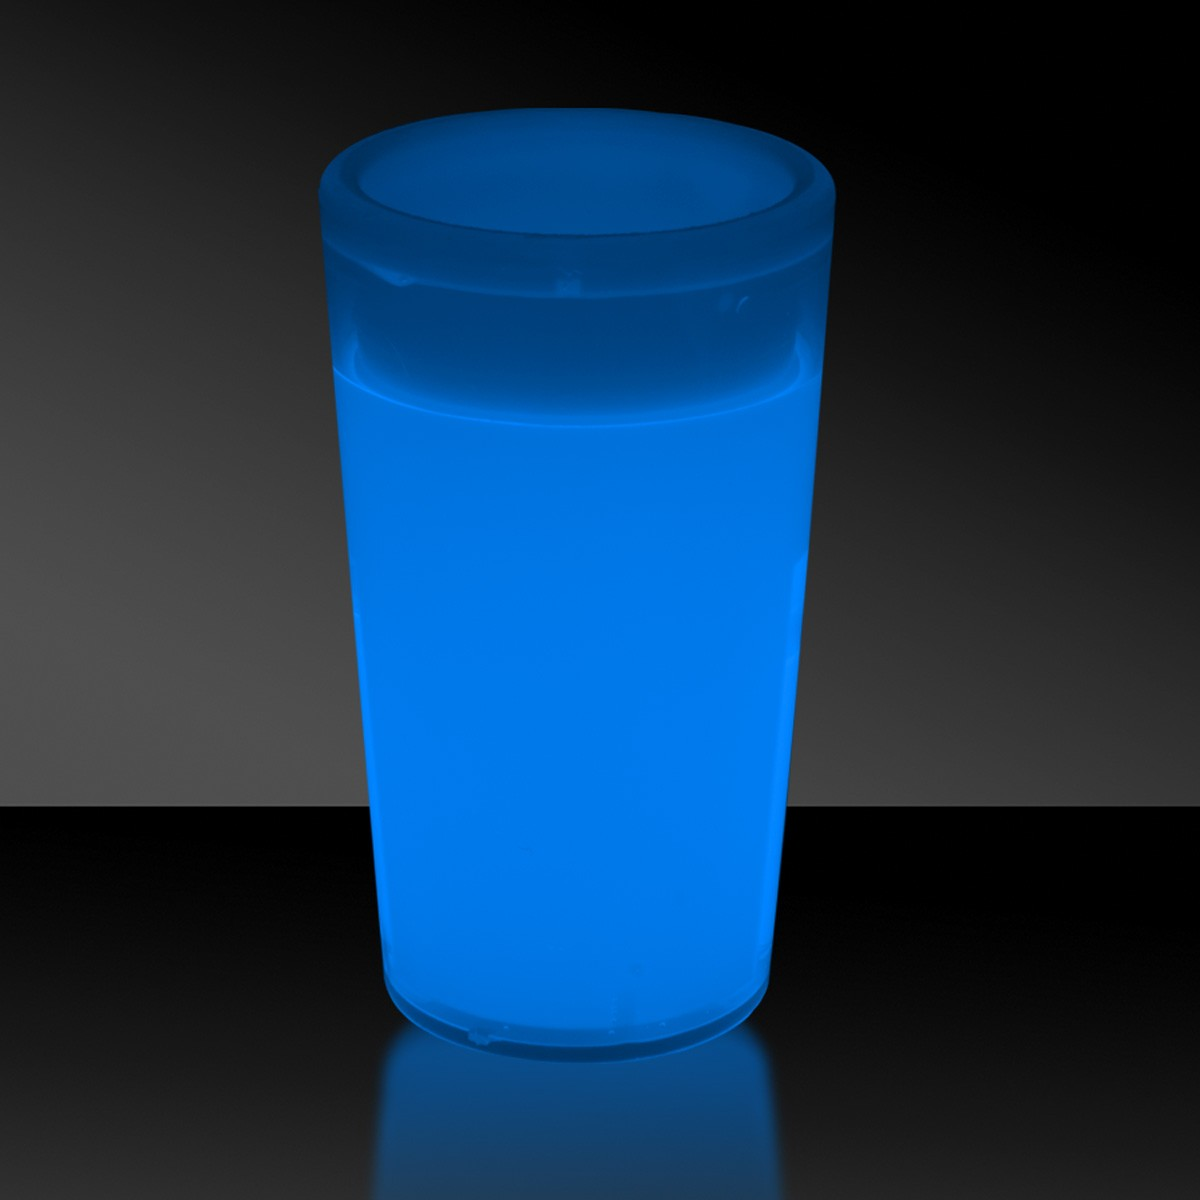 BLUE-TAPERED GLOW SHOT GLASS